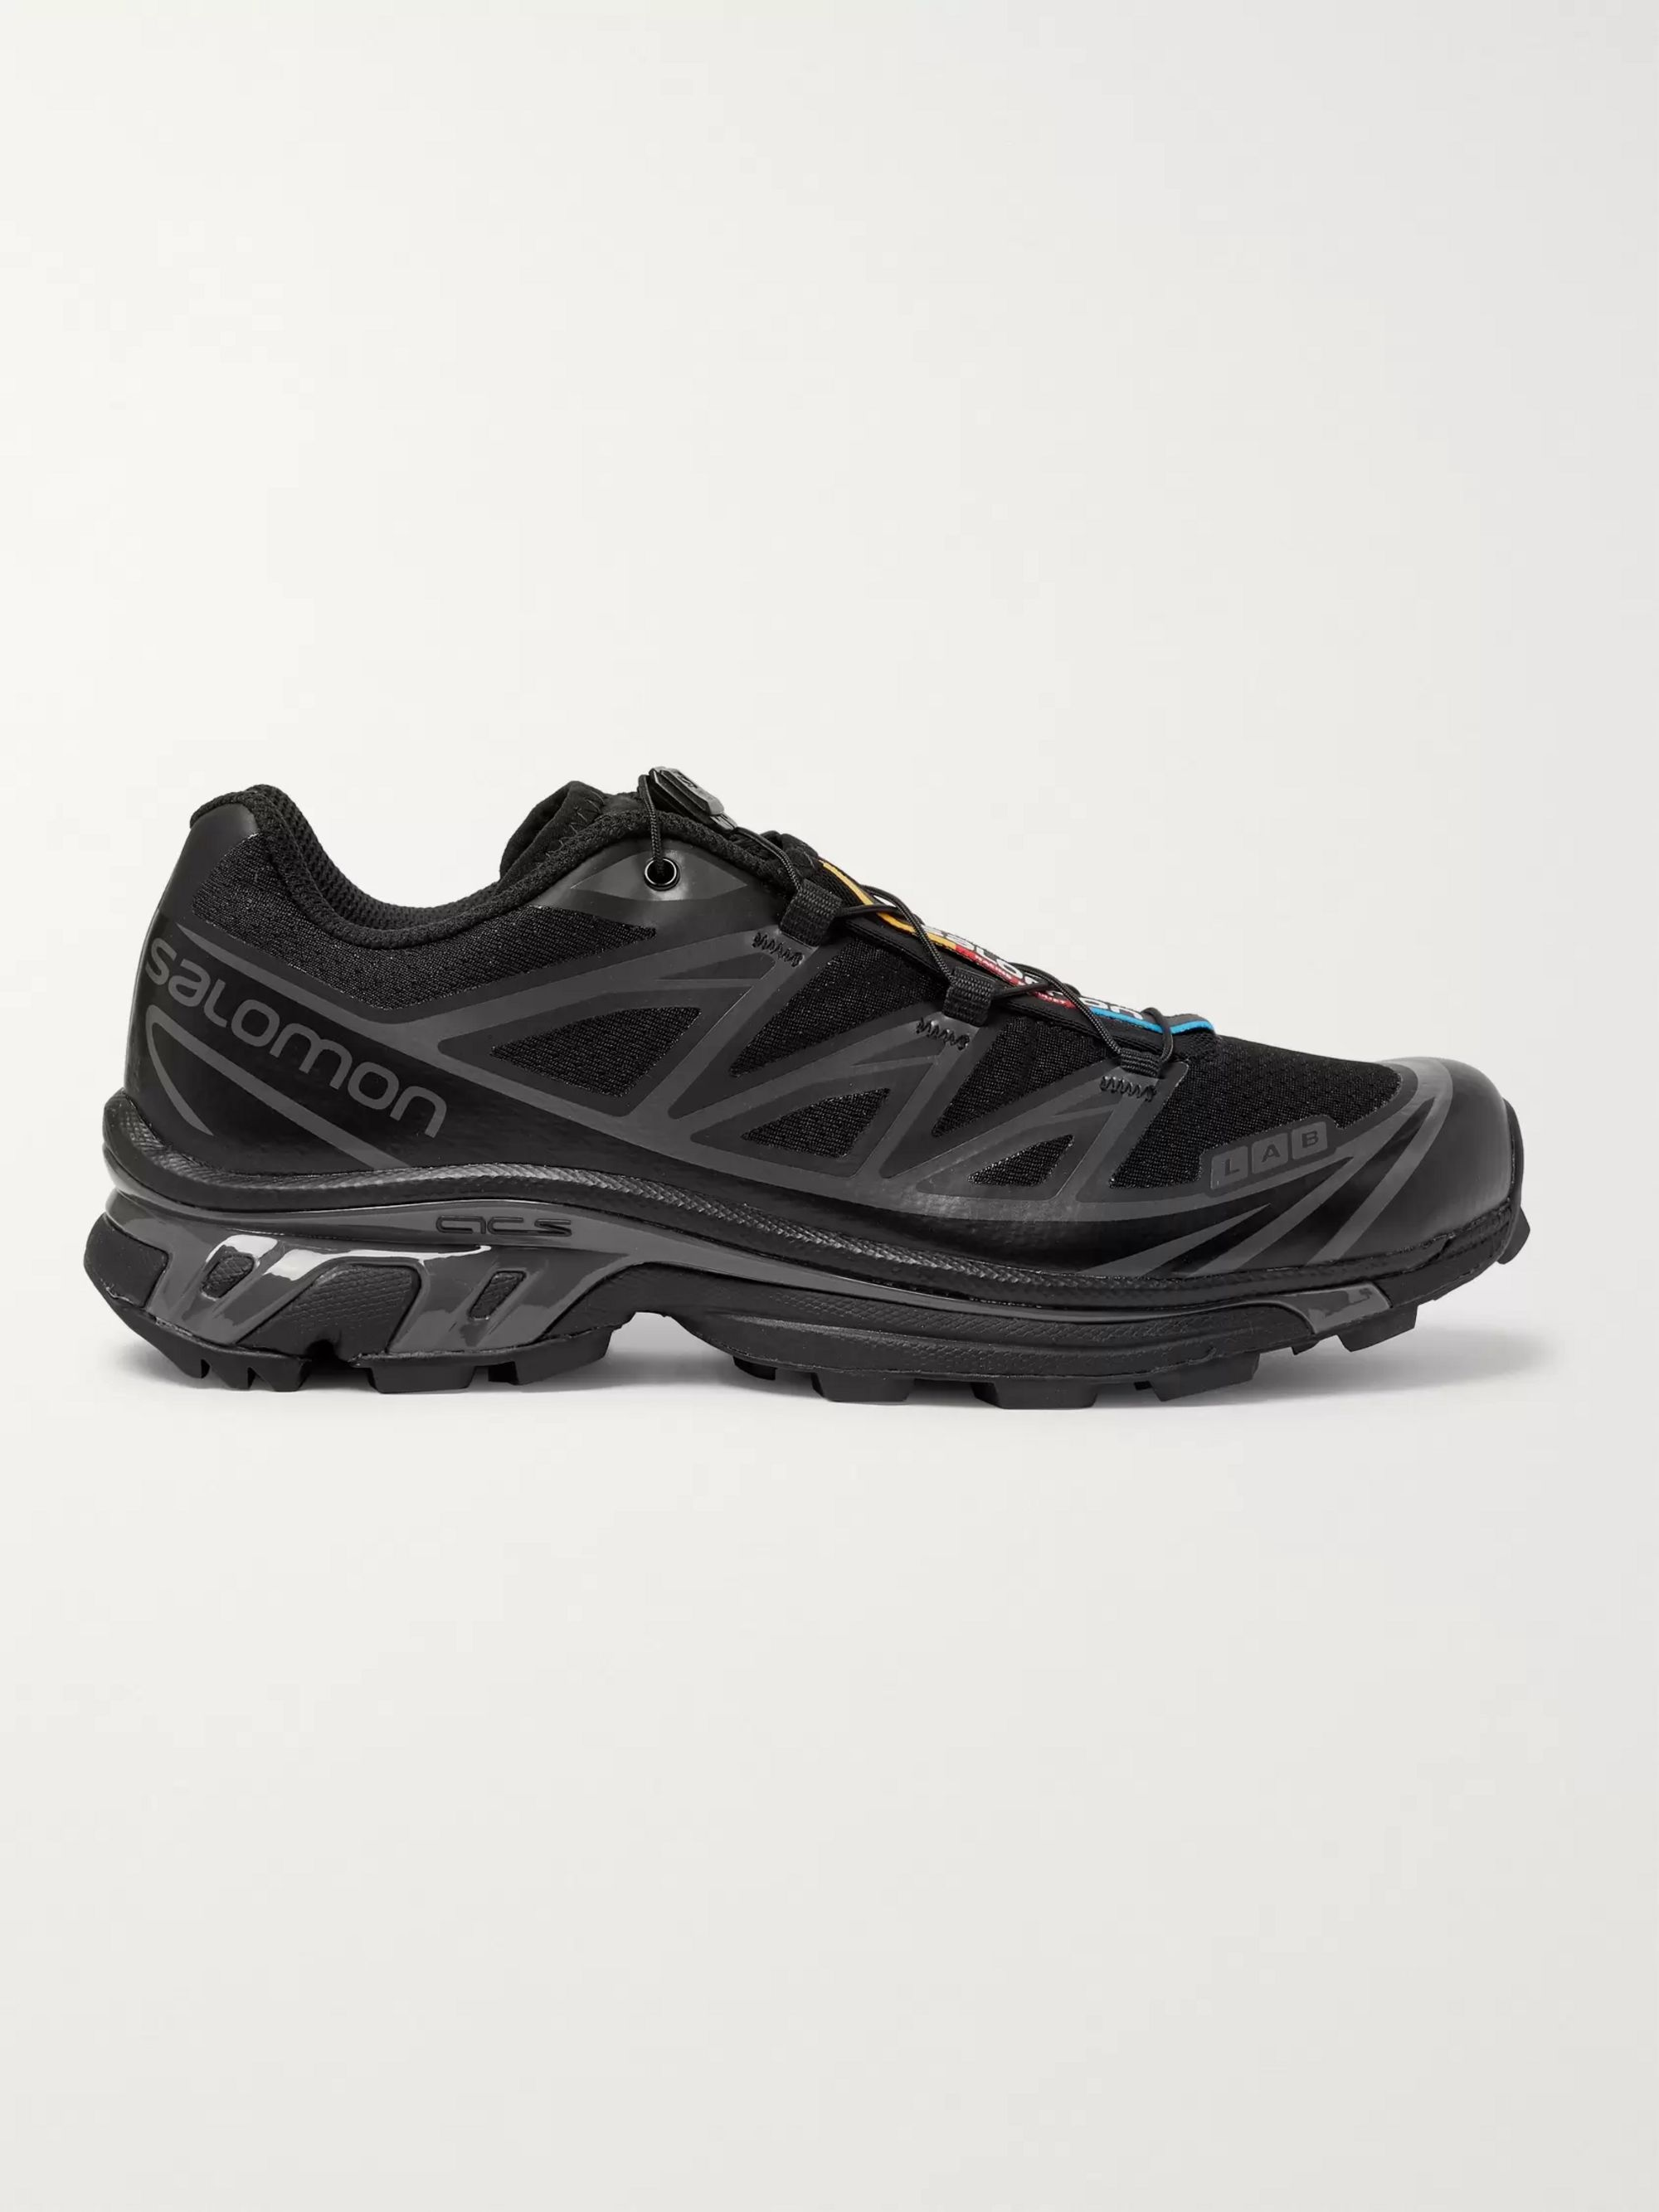 Salomon S/Lab XT-6 Softground ADV Running Sneakers